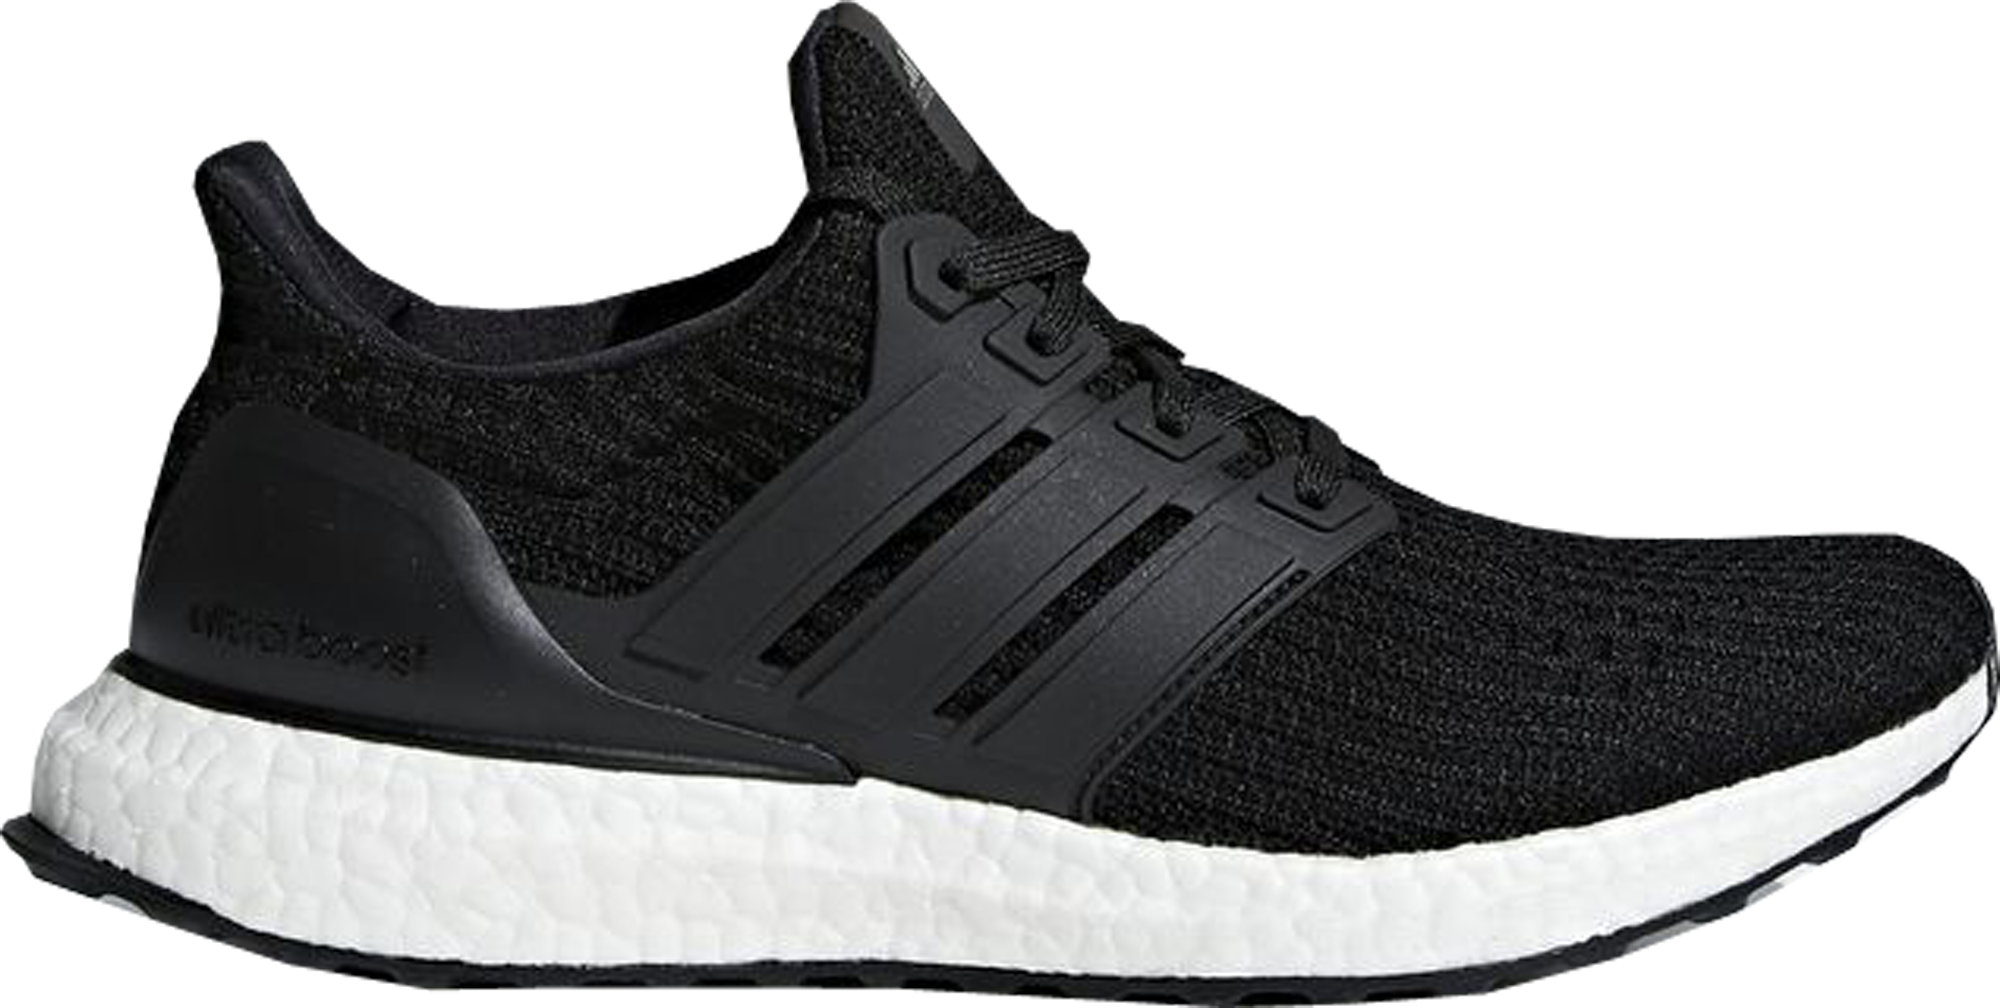 adidas Ultra Boost 4.0 Core Black (W)